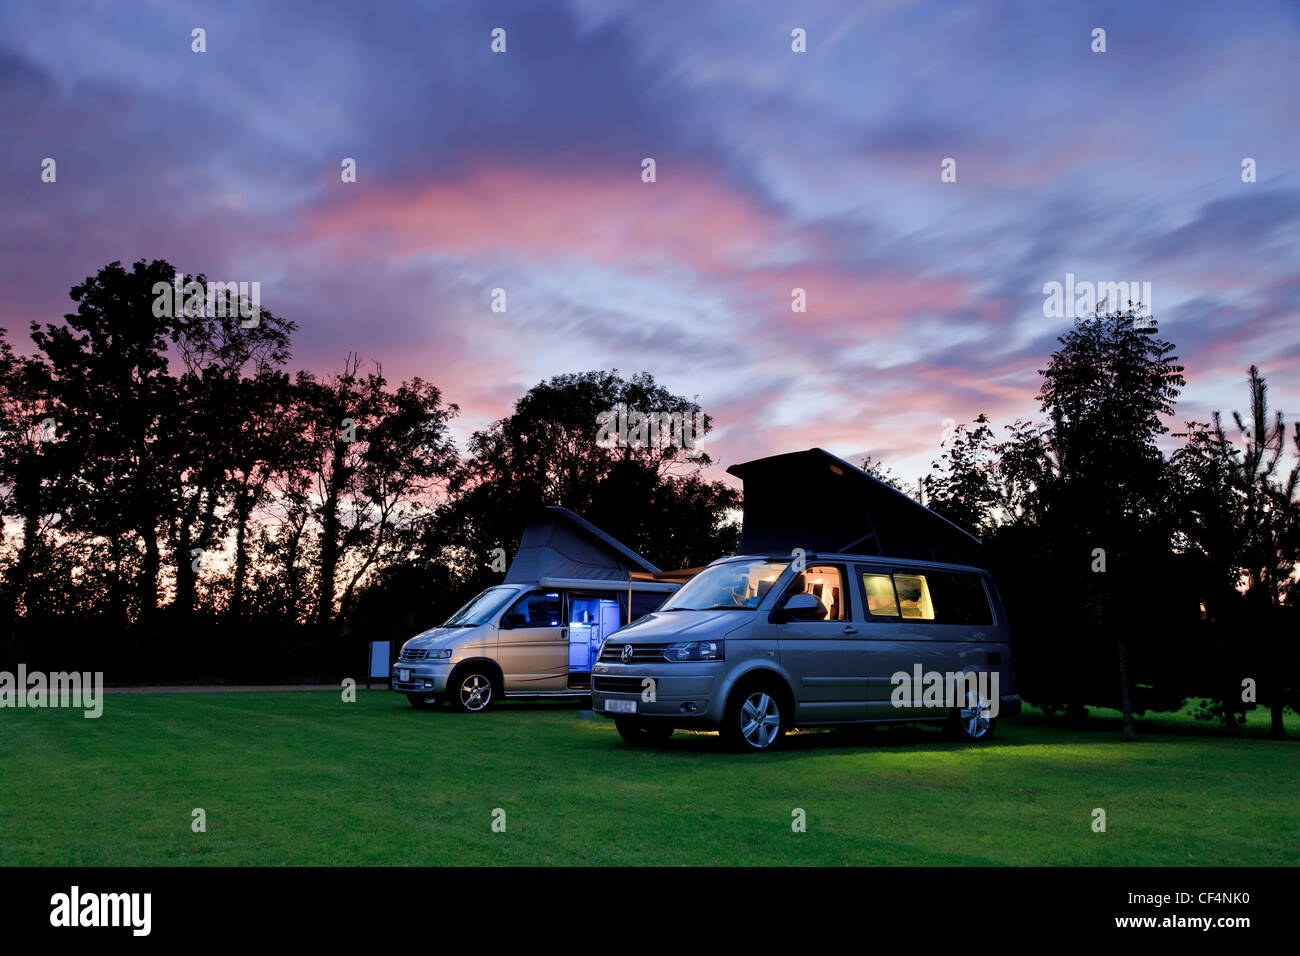 A VW California and a Mazda Bongo, camper vans side by side in a campsite at sunset. - Stock Image